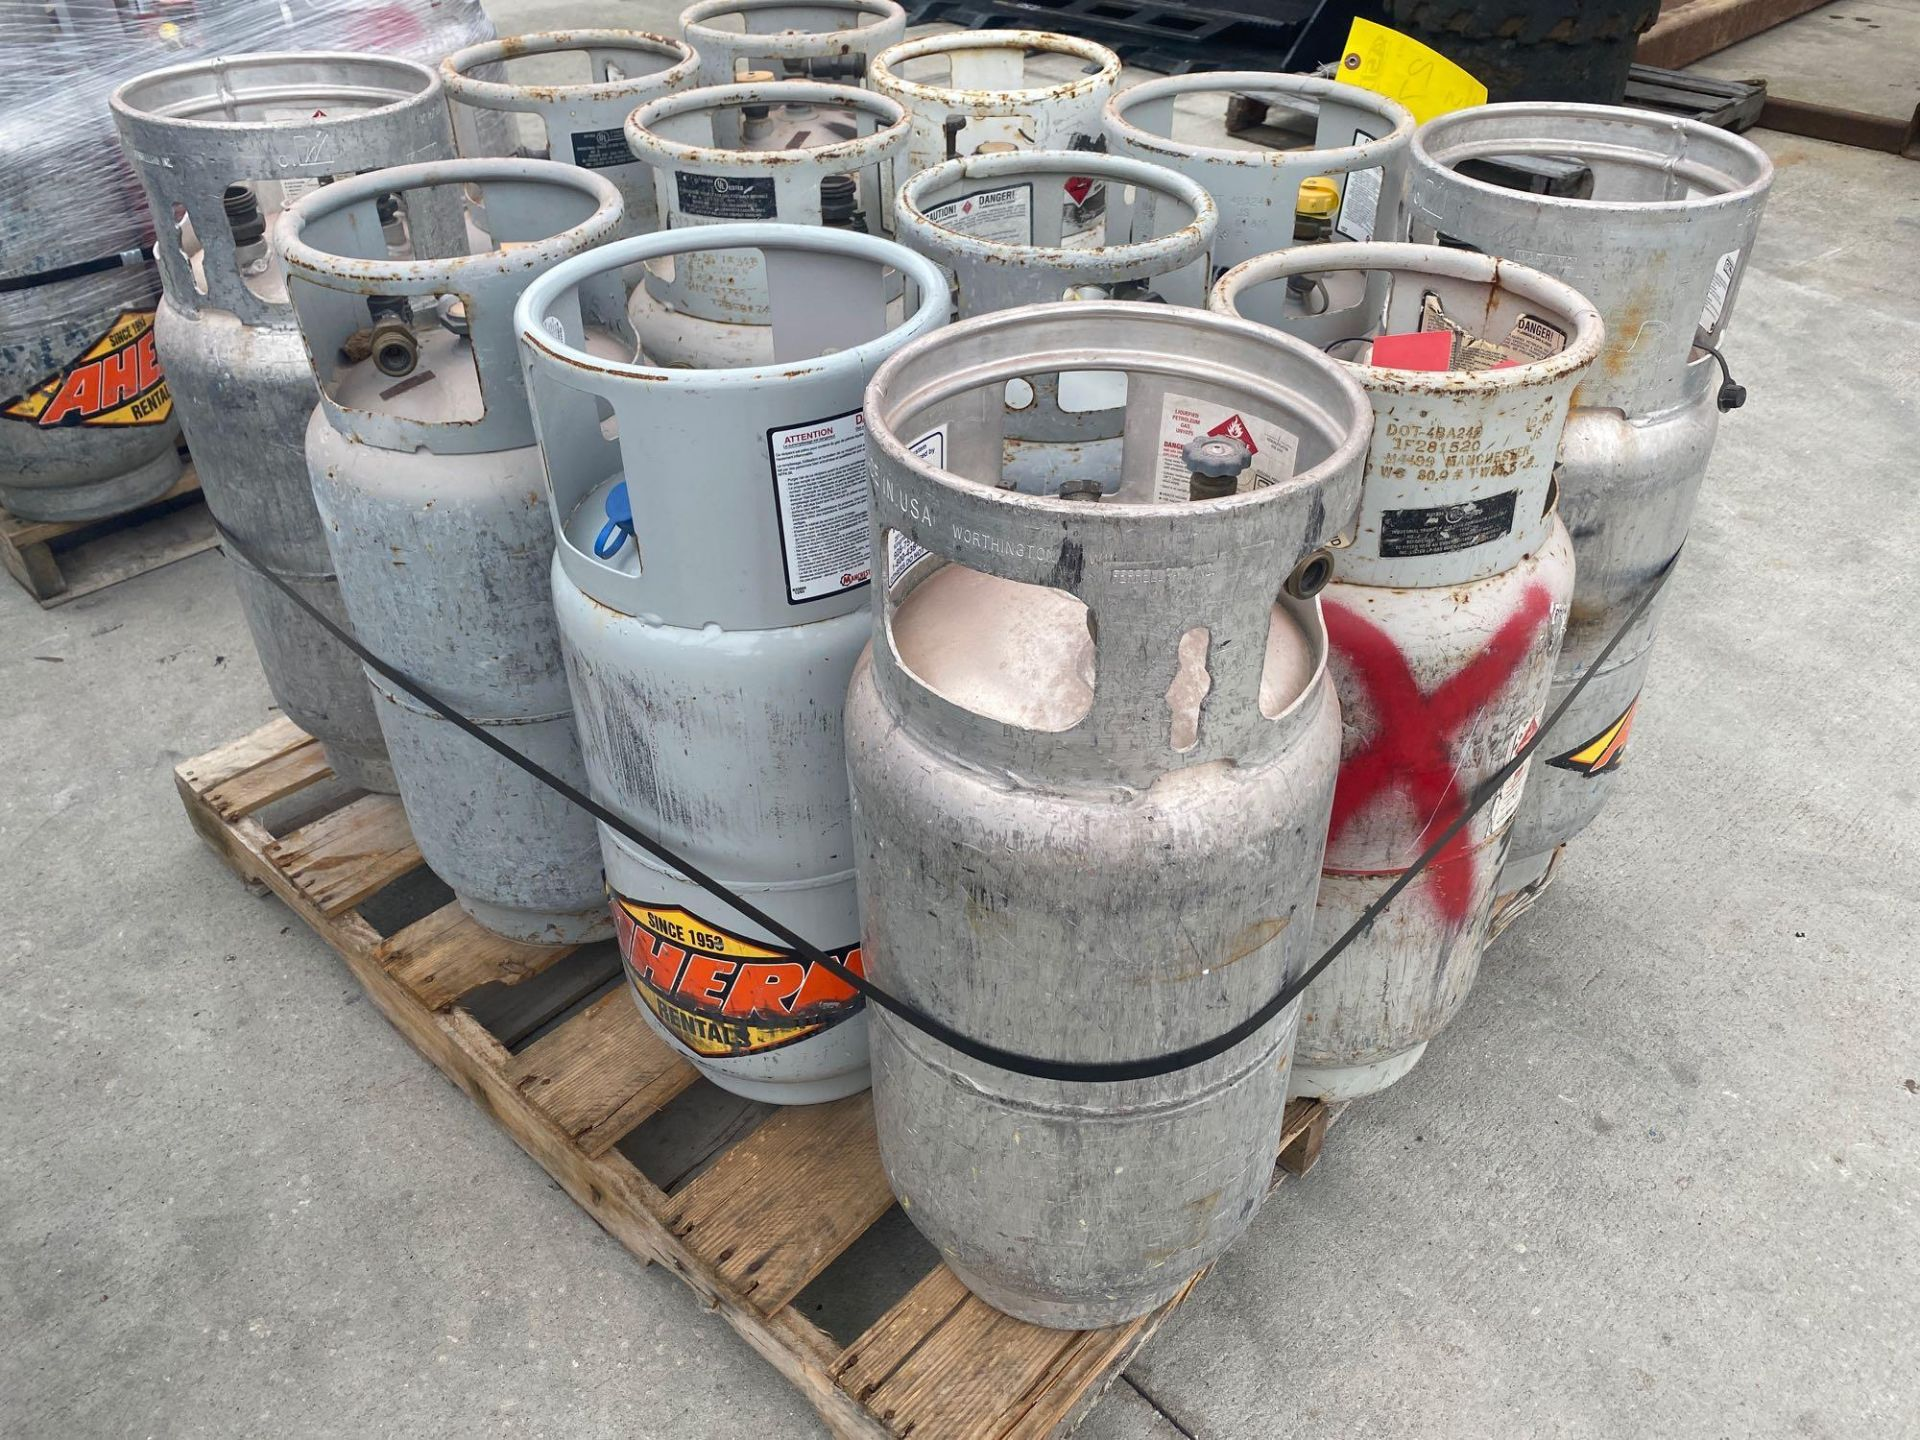 Lot 27 - PALLET OF PROPANE TANKS, ALUMINUM AND STEEL